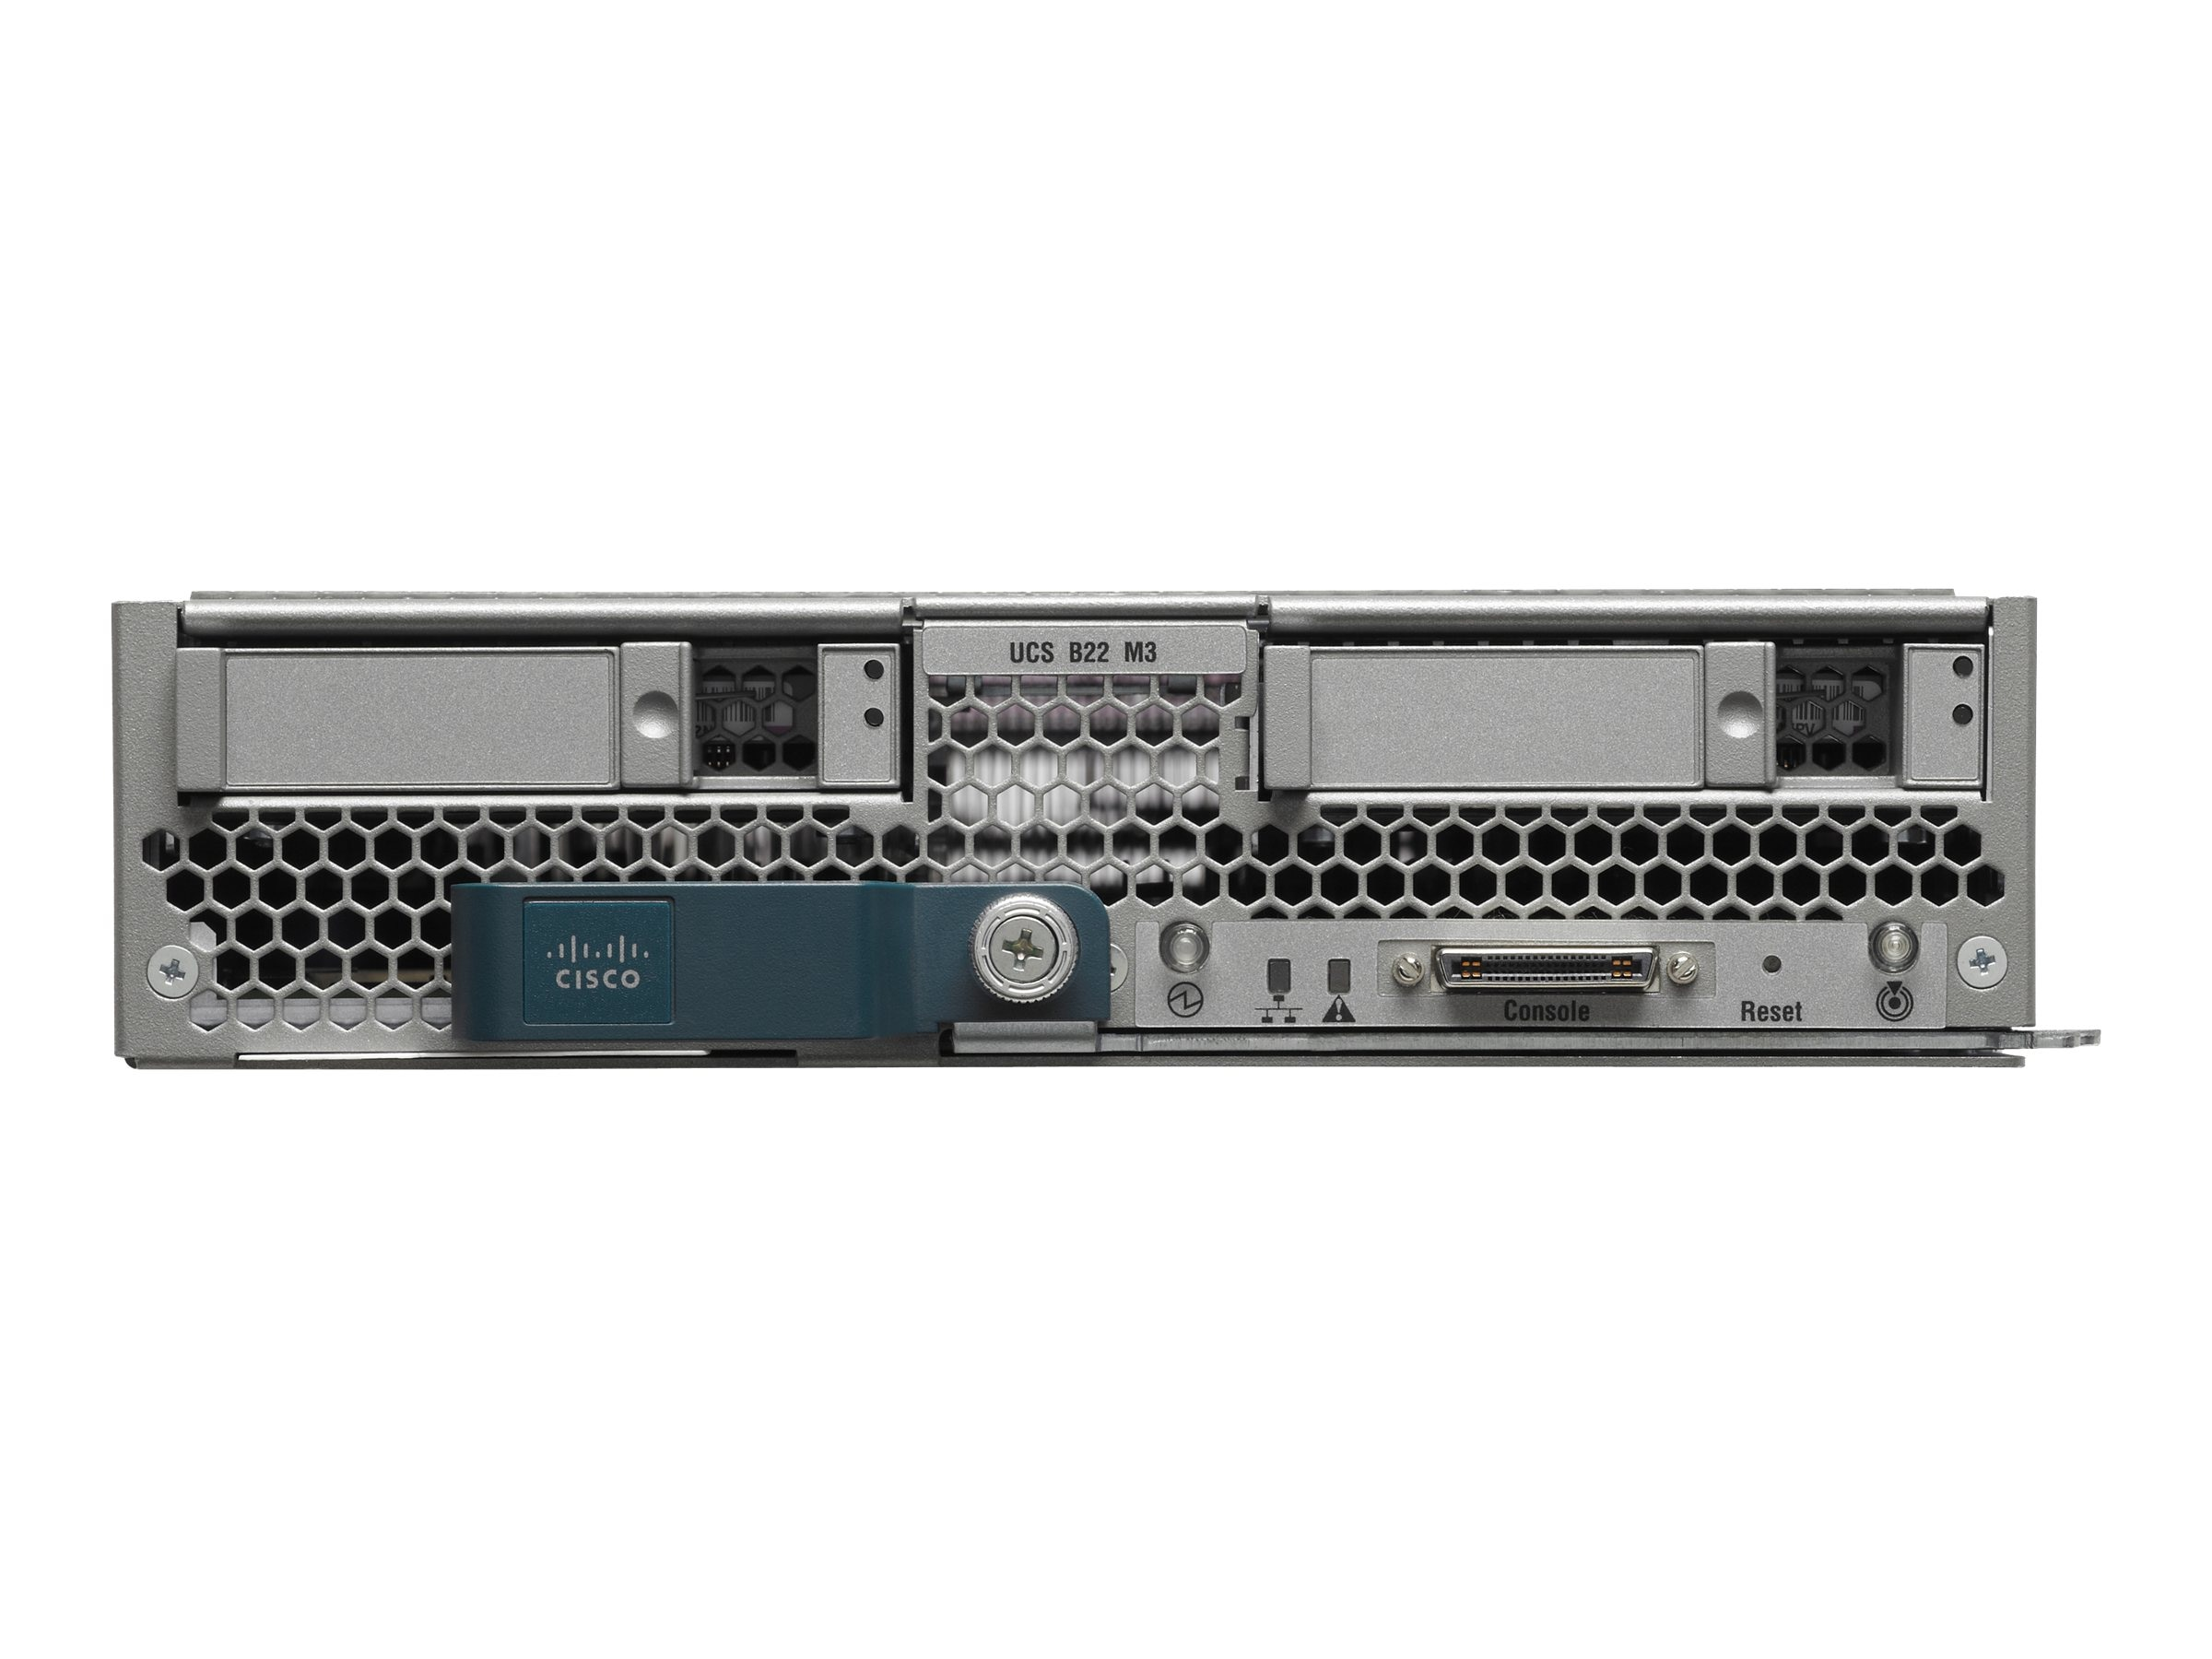 Cisco UCS B22 SmartPlay Entry Expansion Pack (2x) Xeon 6C E5-2420 1.9GHz 15MB 48GB 2x2.5 HS Bays 10GbE, UCS-EZ-ENTS-B22M3, 15401991, Servers - Blade